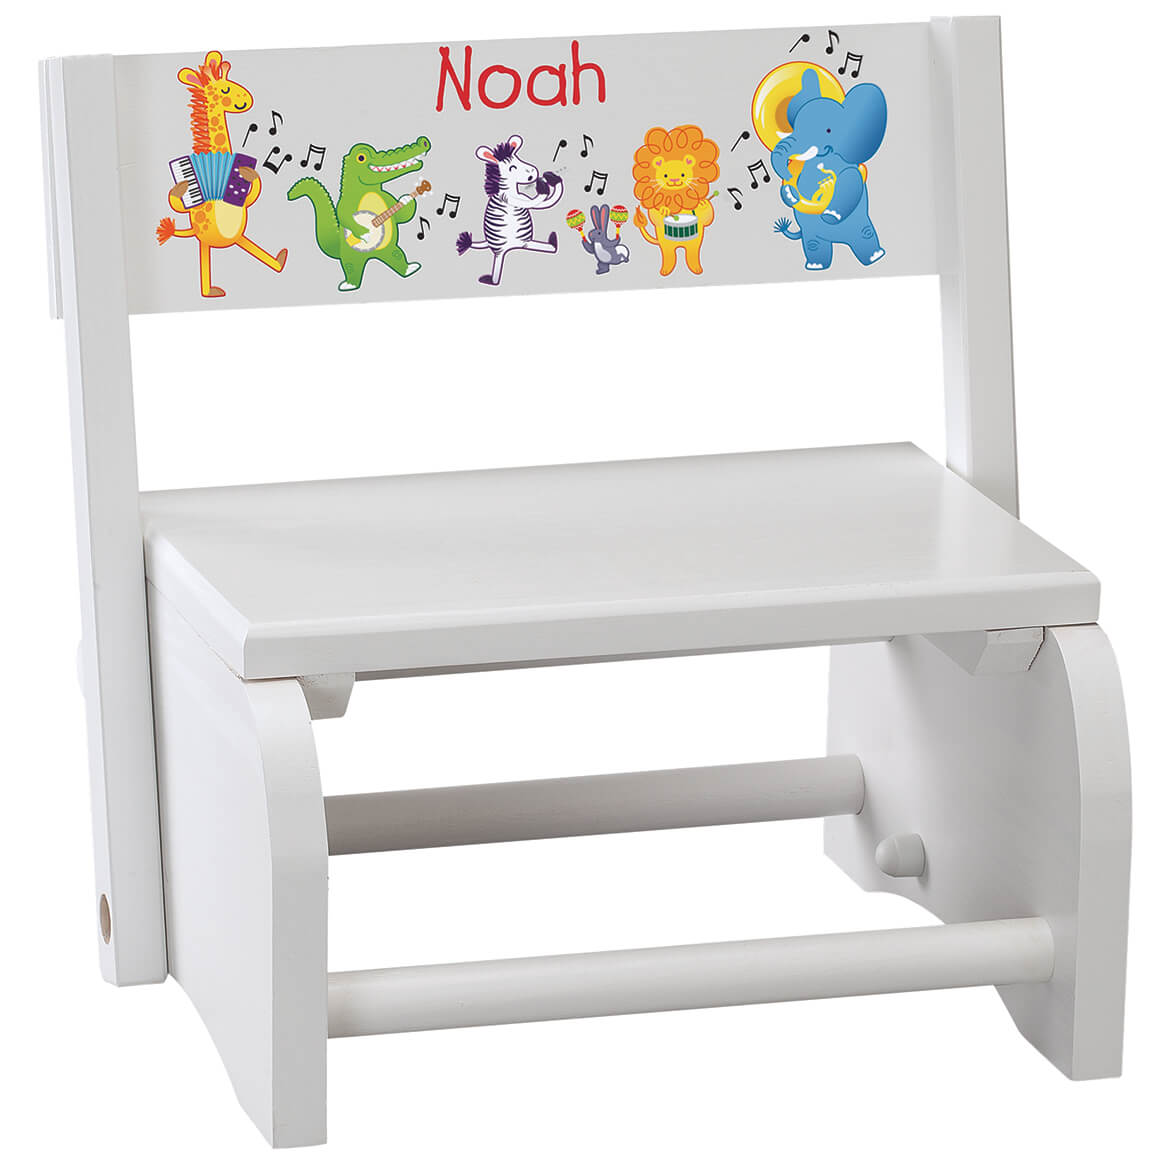 Personalized Children's White Musical Animals Step Stool-368490